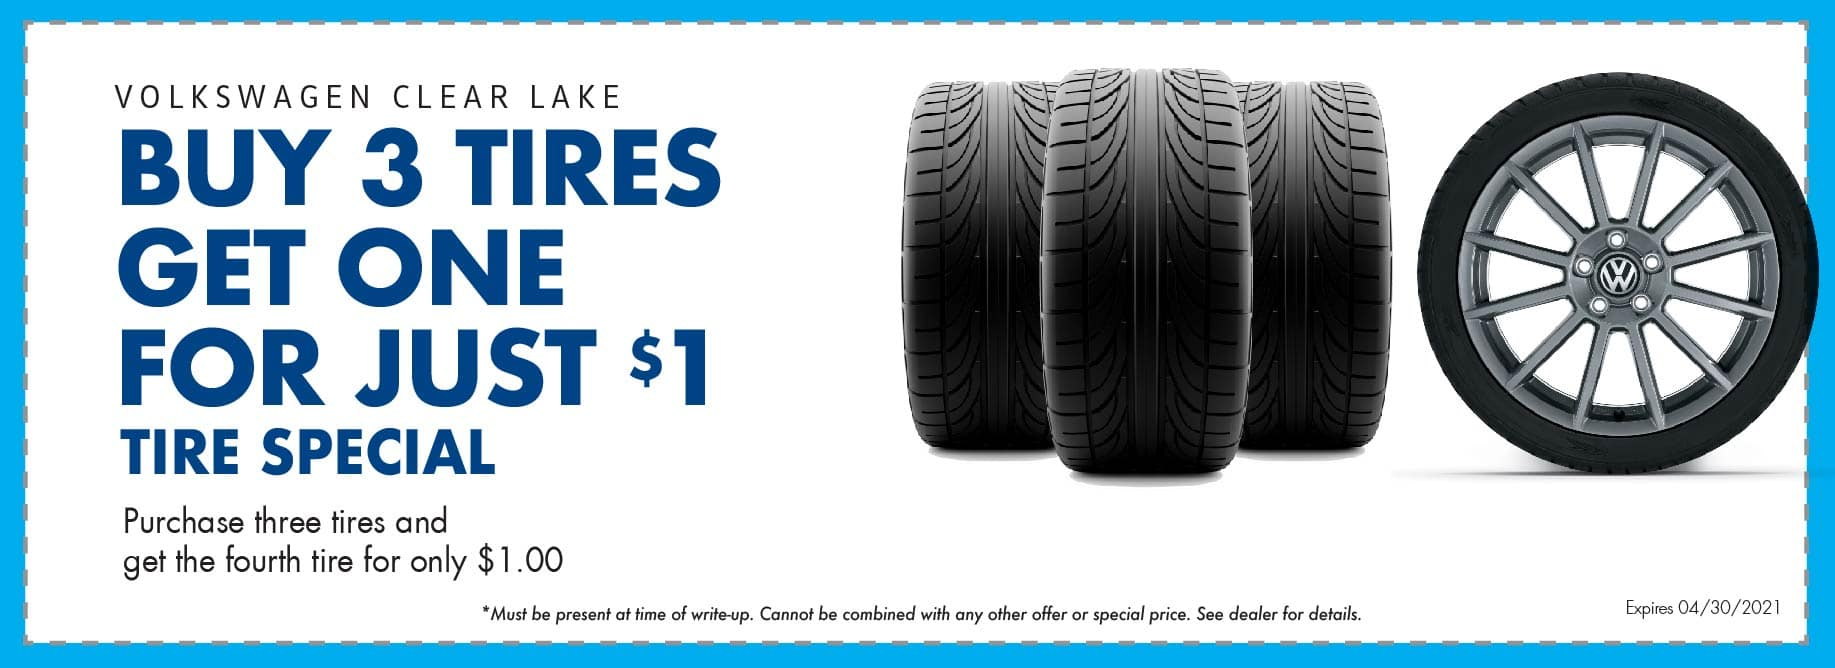 Buy 3 tires get one for only $1 at Volkswagen Clear Lake.